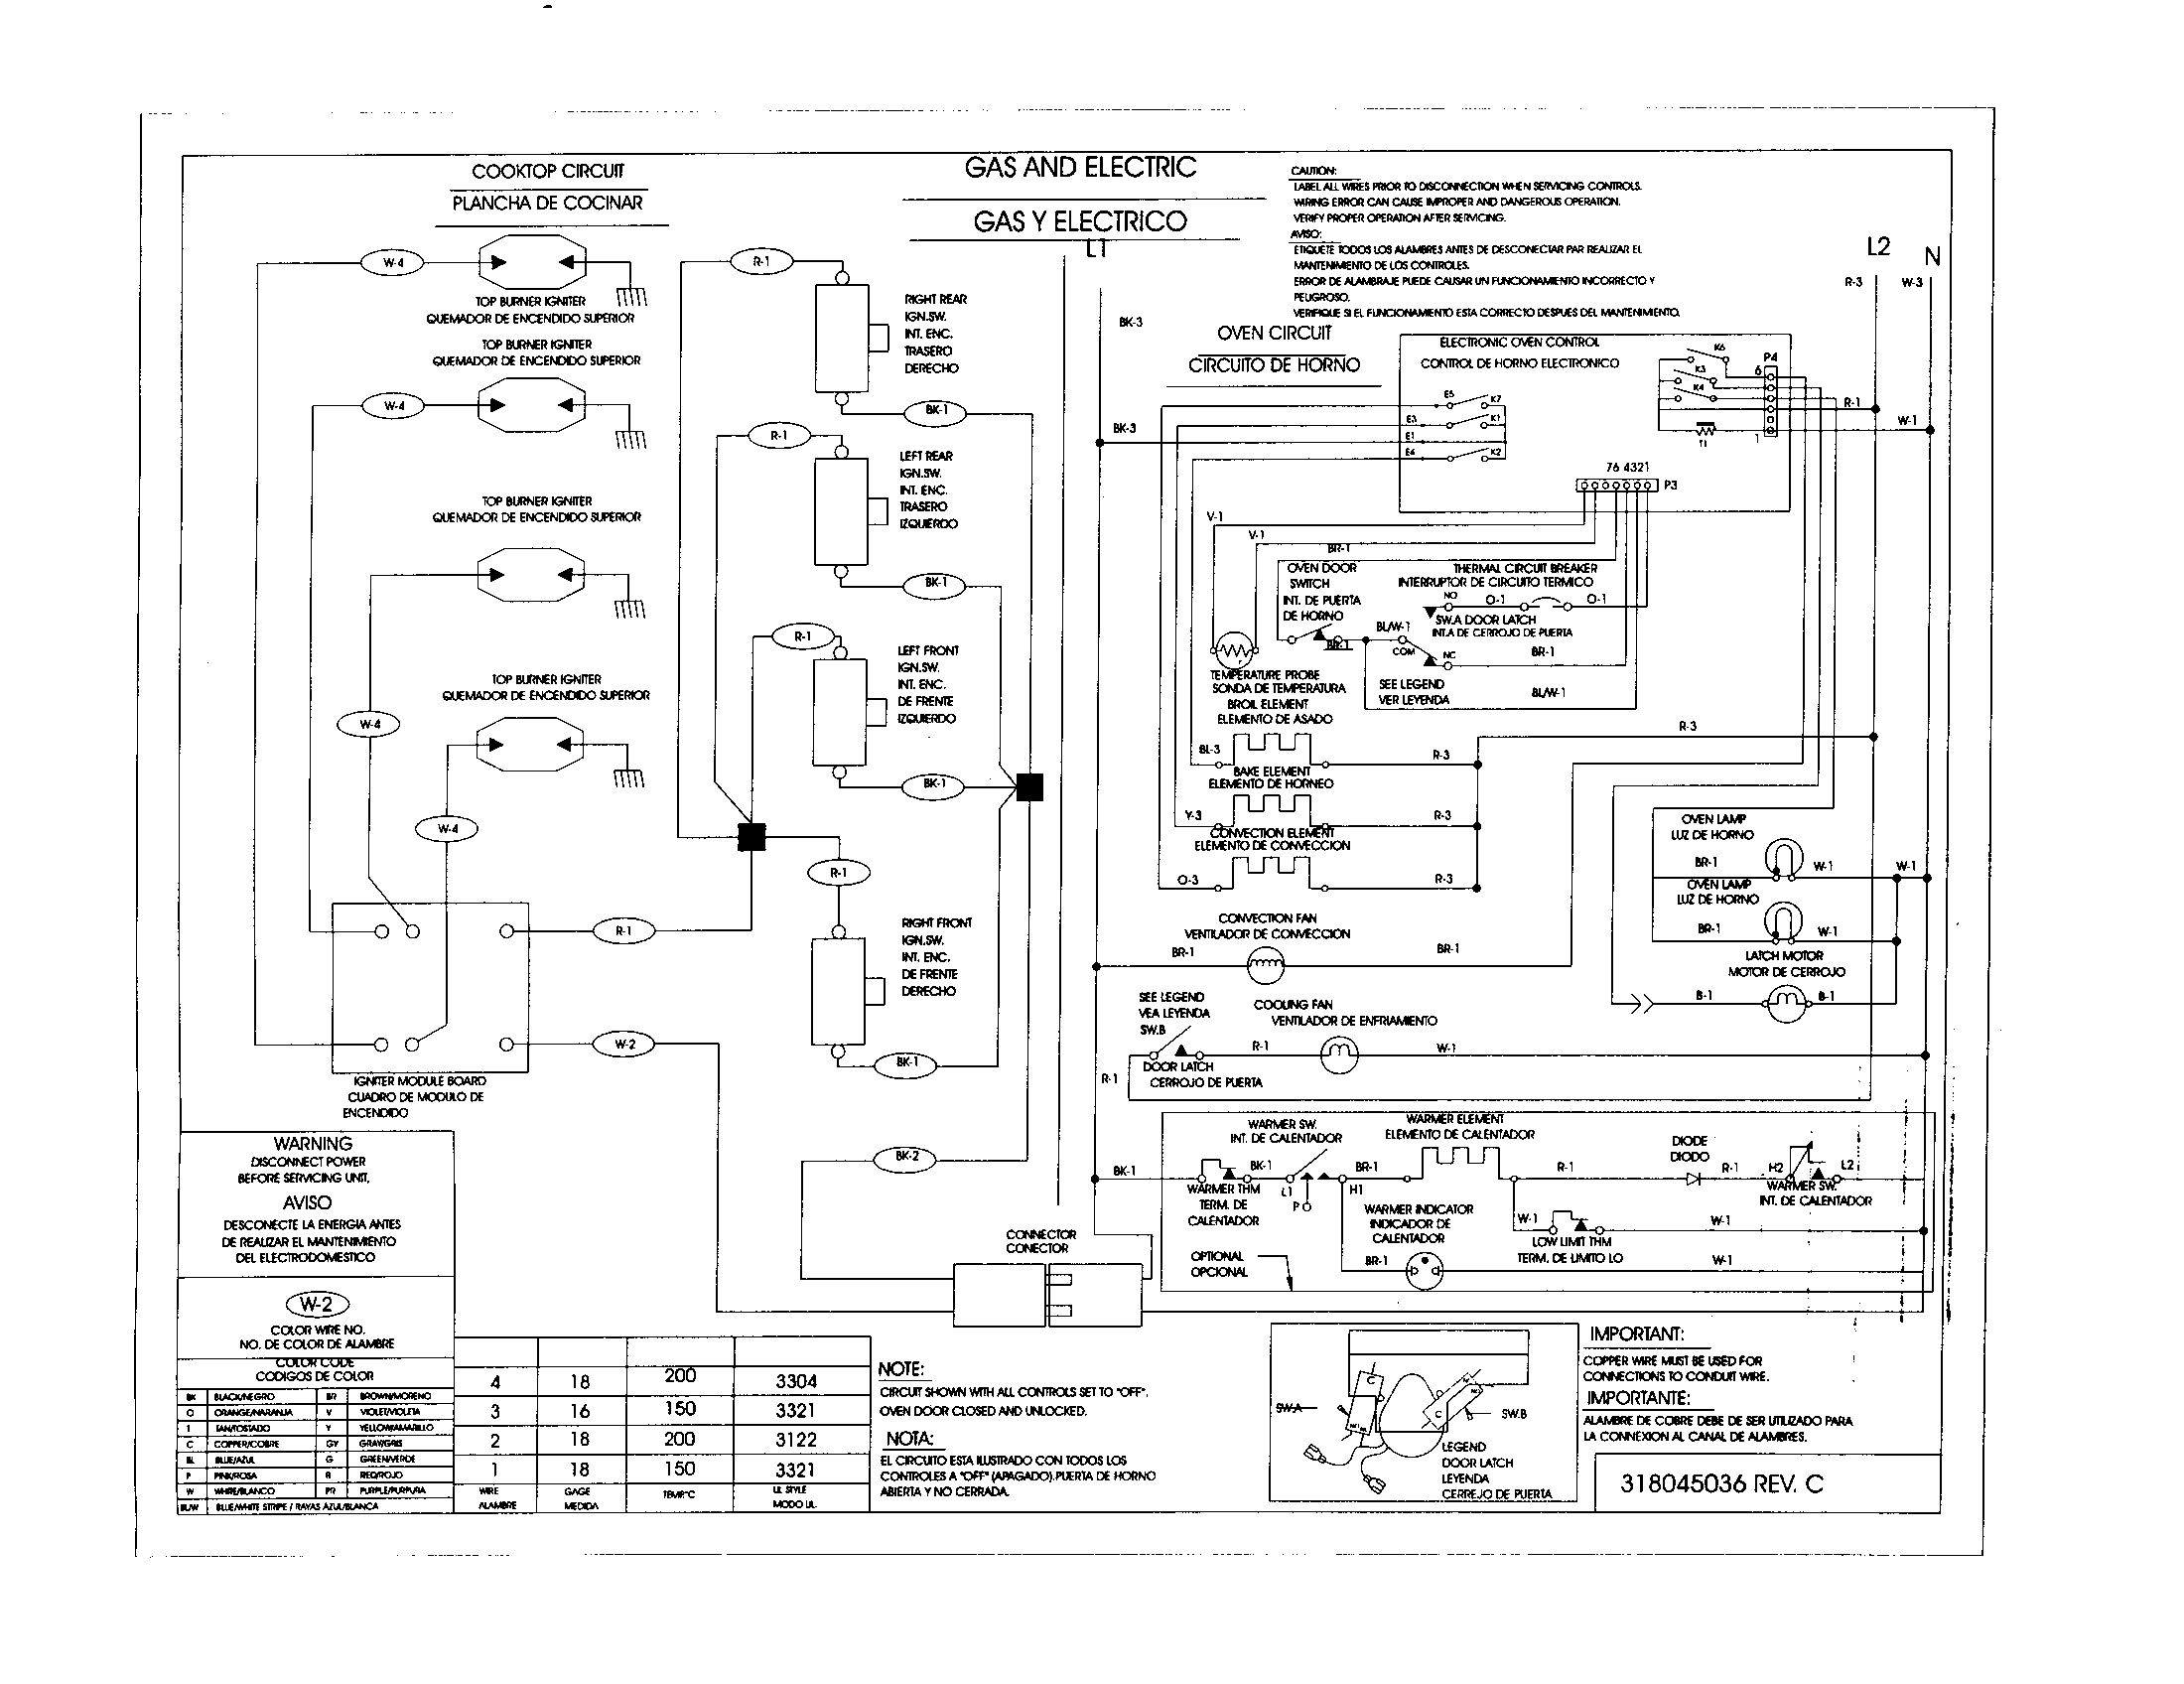 kenmore refrigerator wiring schematic Download-Kenmore Elite Refrigerator Parts Diagram Beautiful Kenmore Elite Refrigerator Wiring Diagram Webtor 6-k